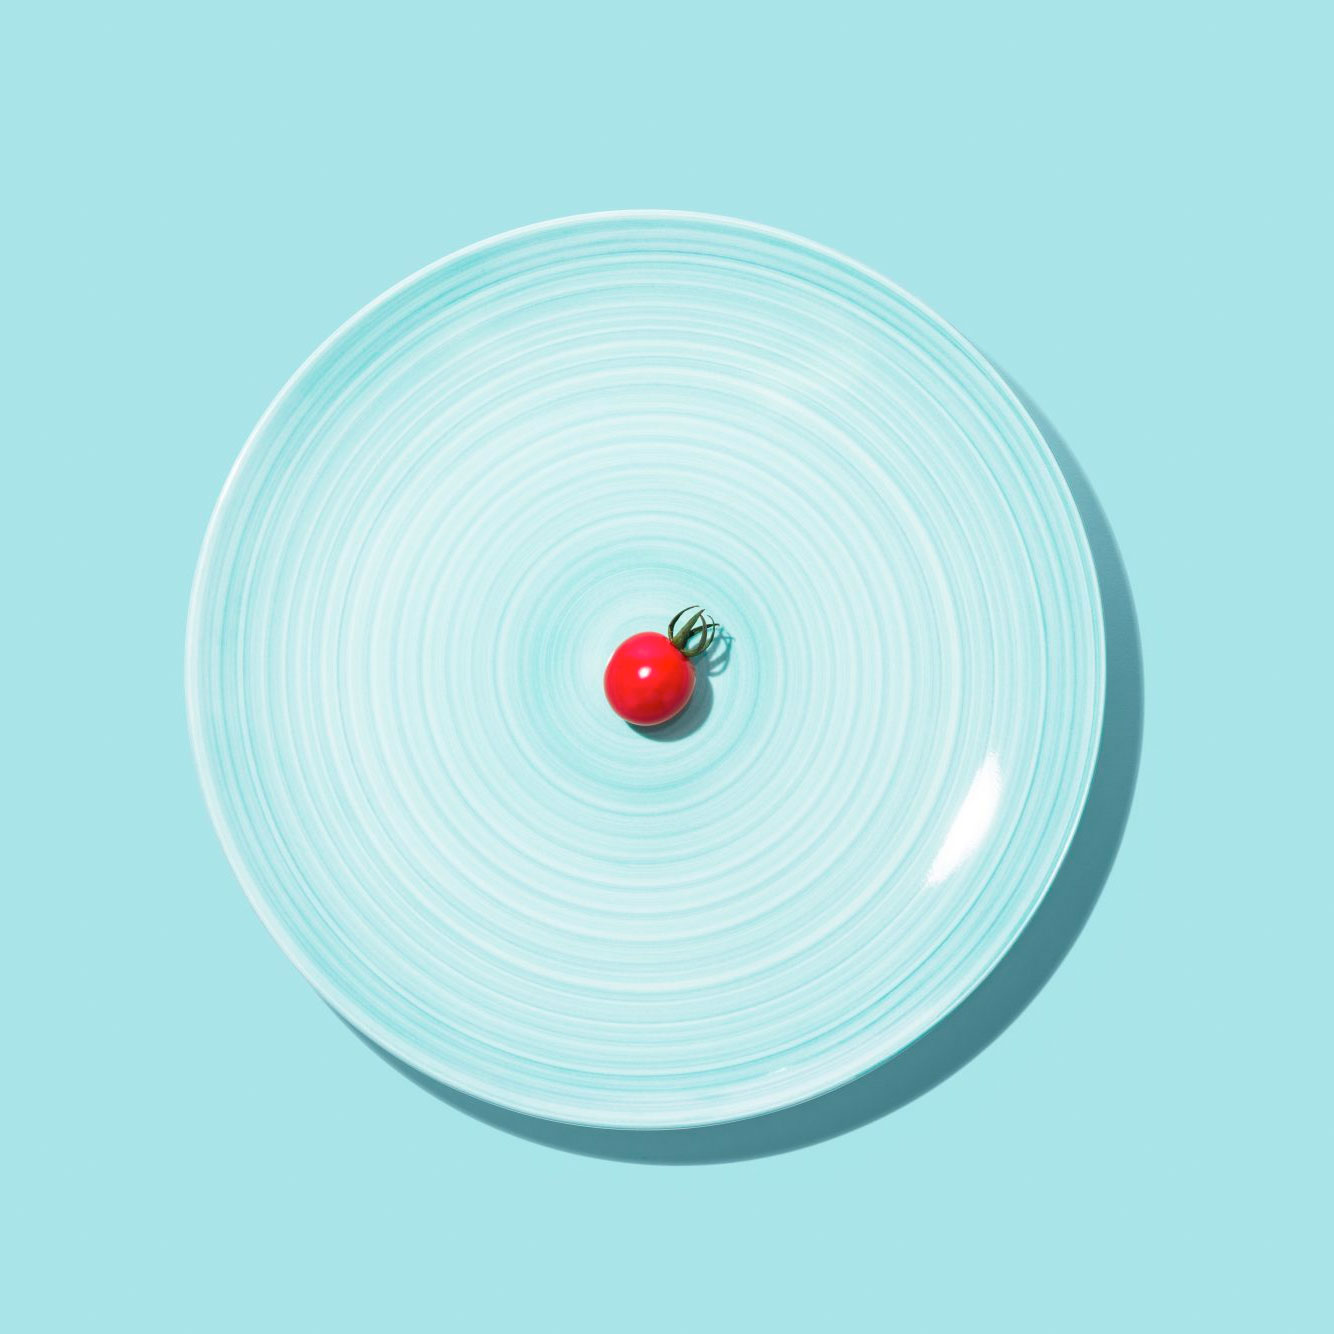 plate with one tiny tomato on it